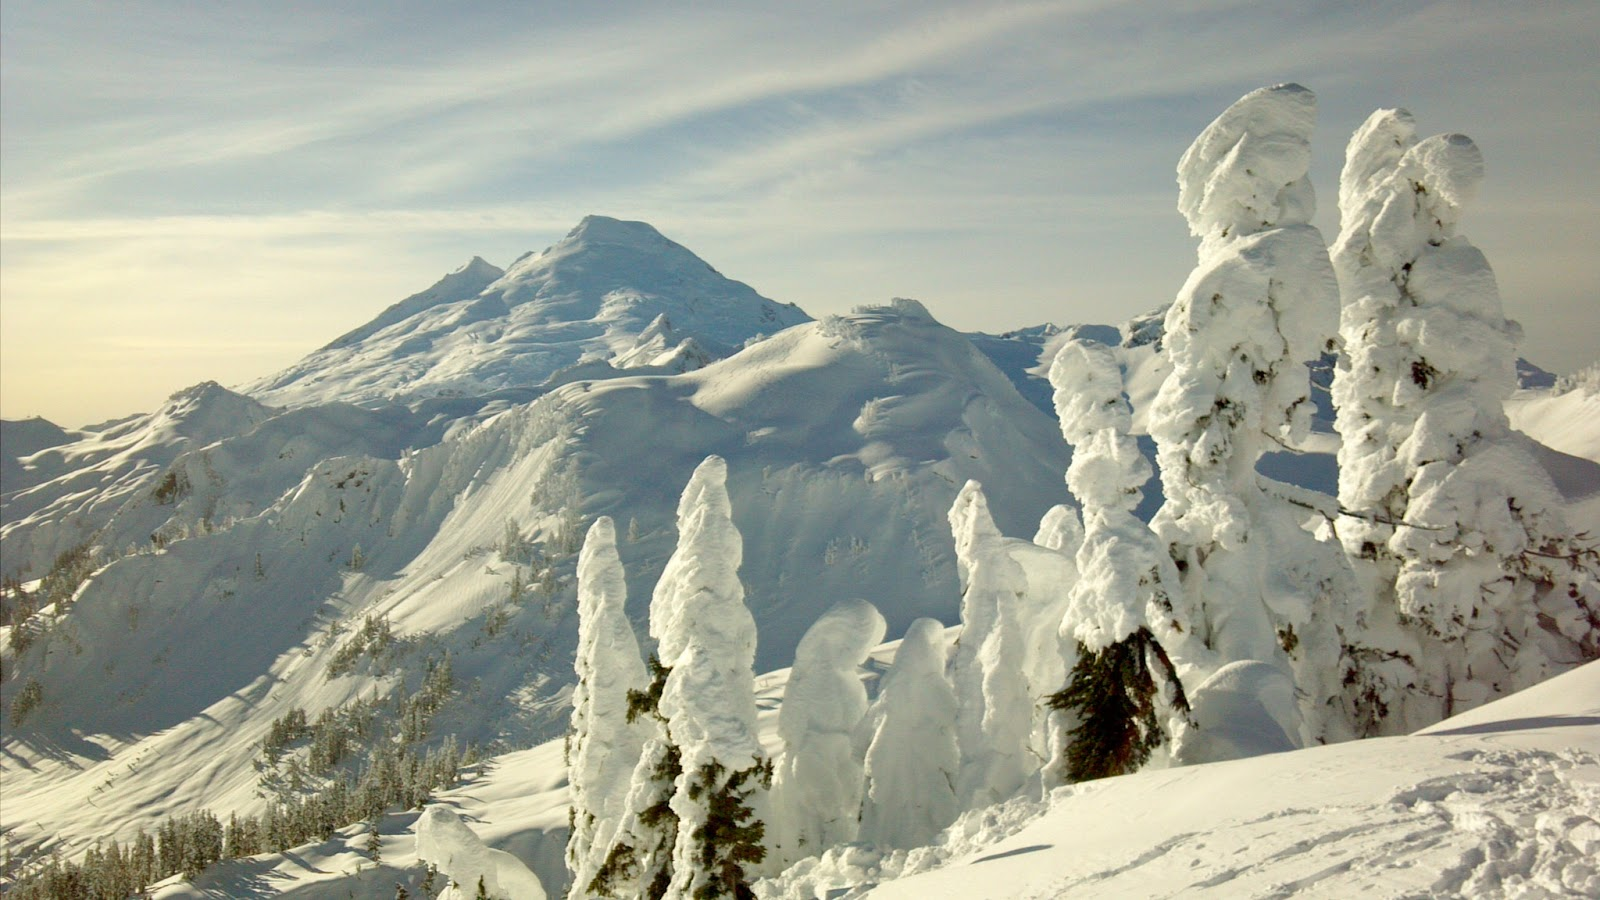 point baker Book your tickets online for mount baker, washington: see 64 reviews, articles, and 69 photos of mount baker, ranked no349 on tripadvisor among 2,892 attractions in.